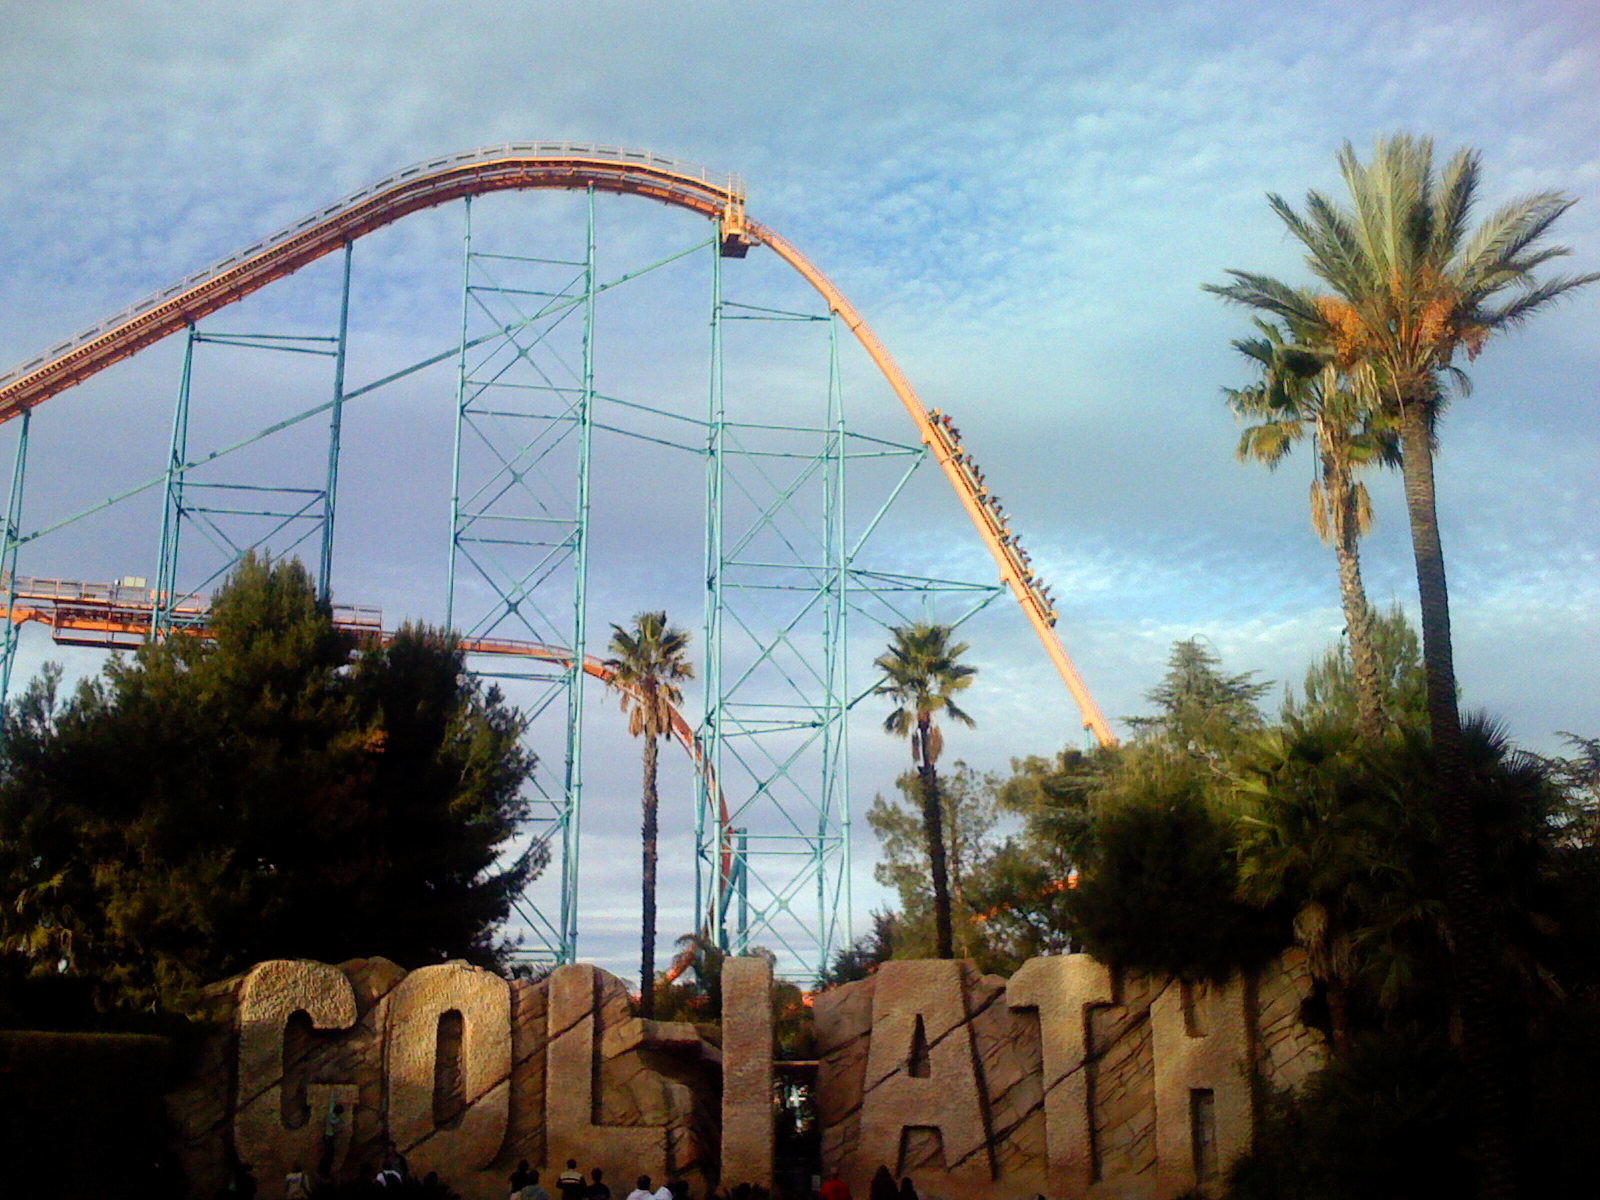 Goliath Six Flags Magic Mountain